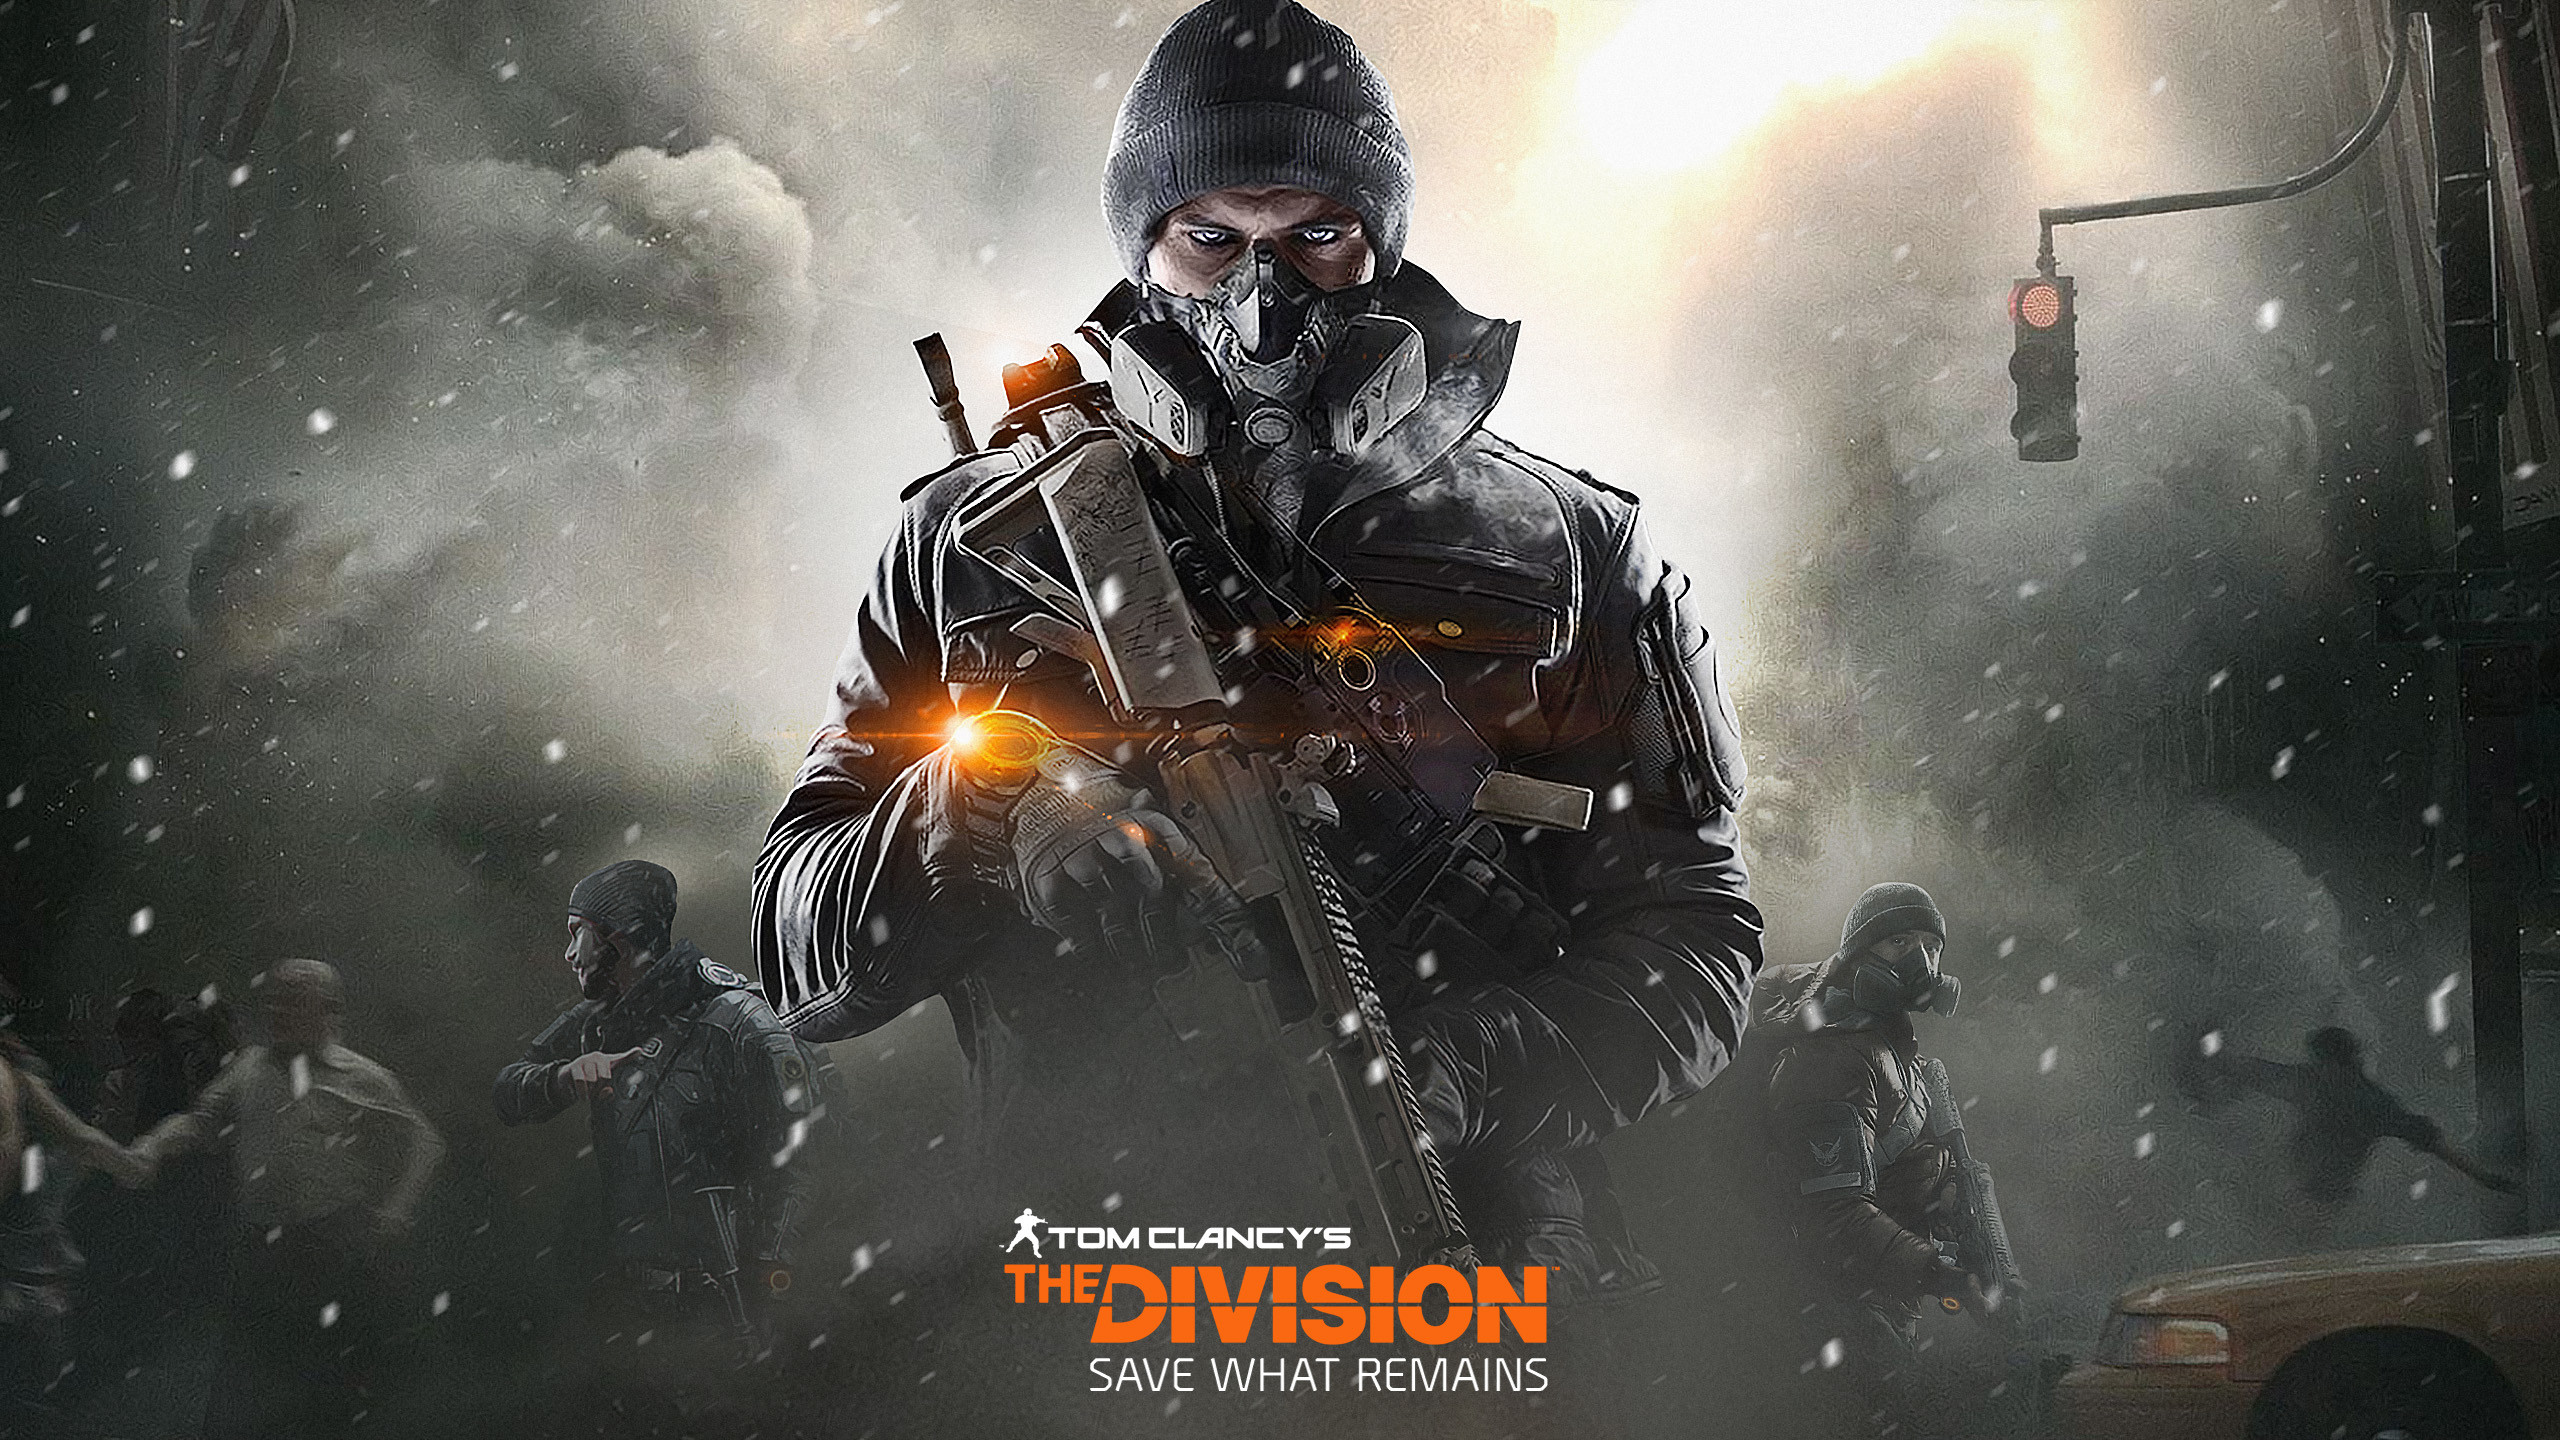 The Division Wallpaper 4k